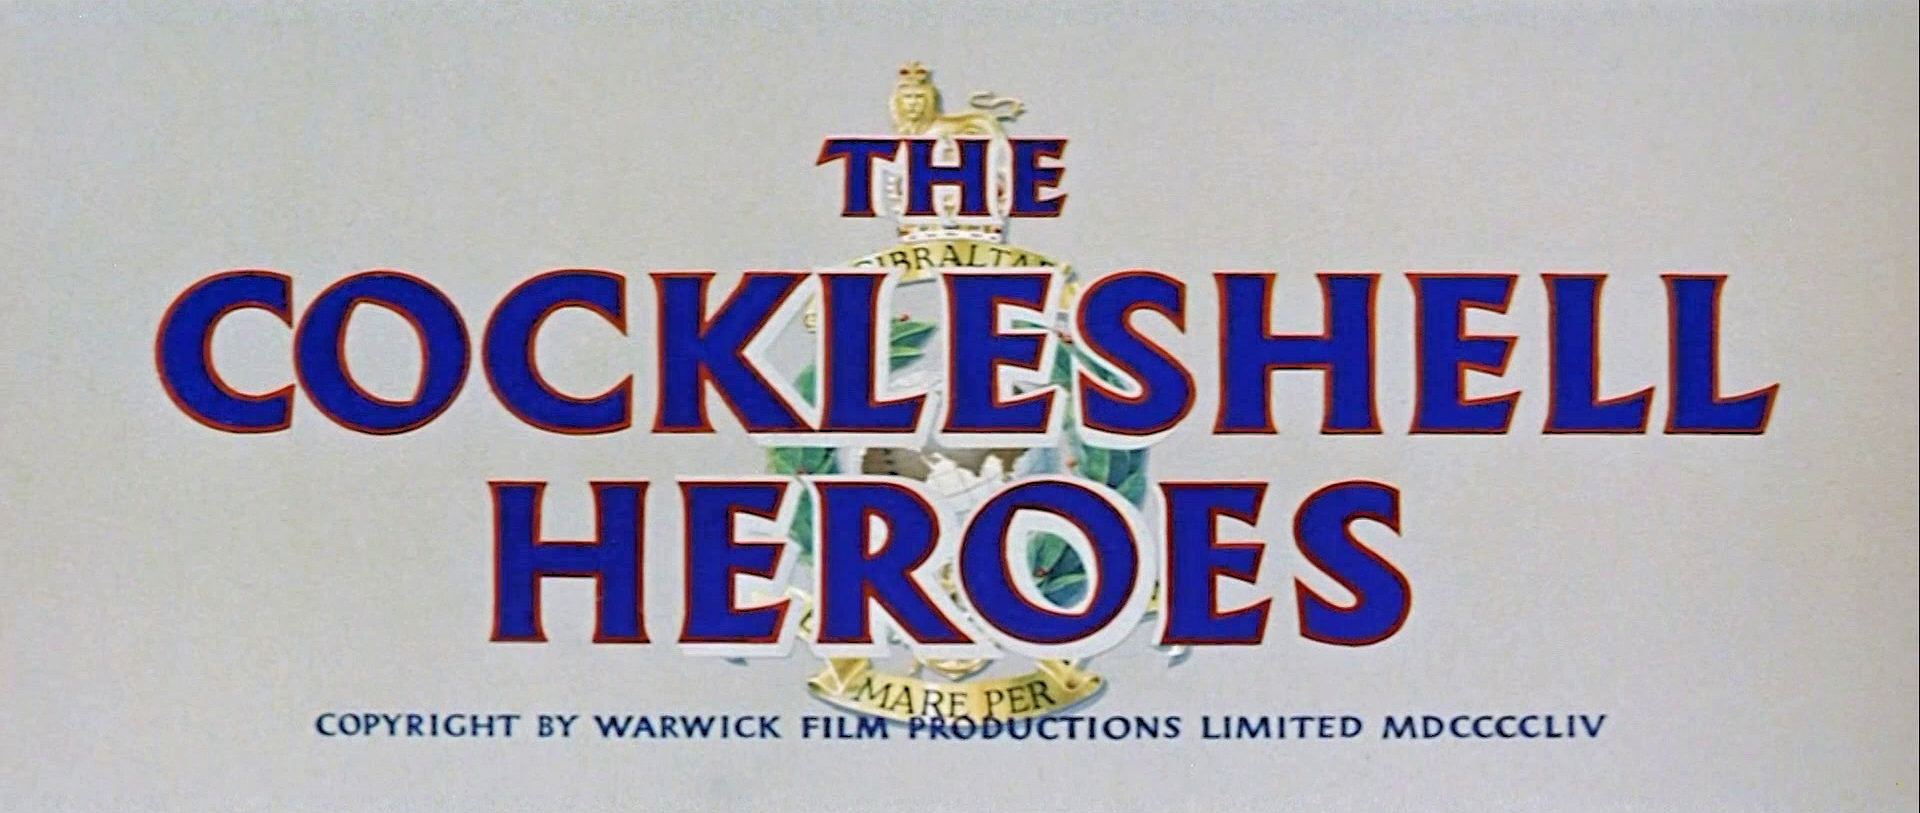 Main title from The Cockleshell Heroes (1955) (3).  Copyright by Warwick Film Productions Limited 1954